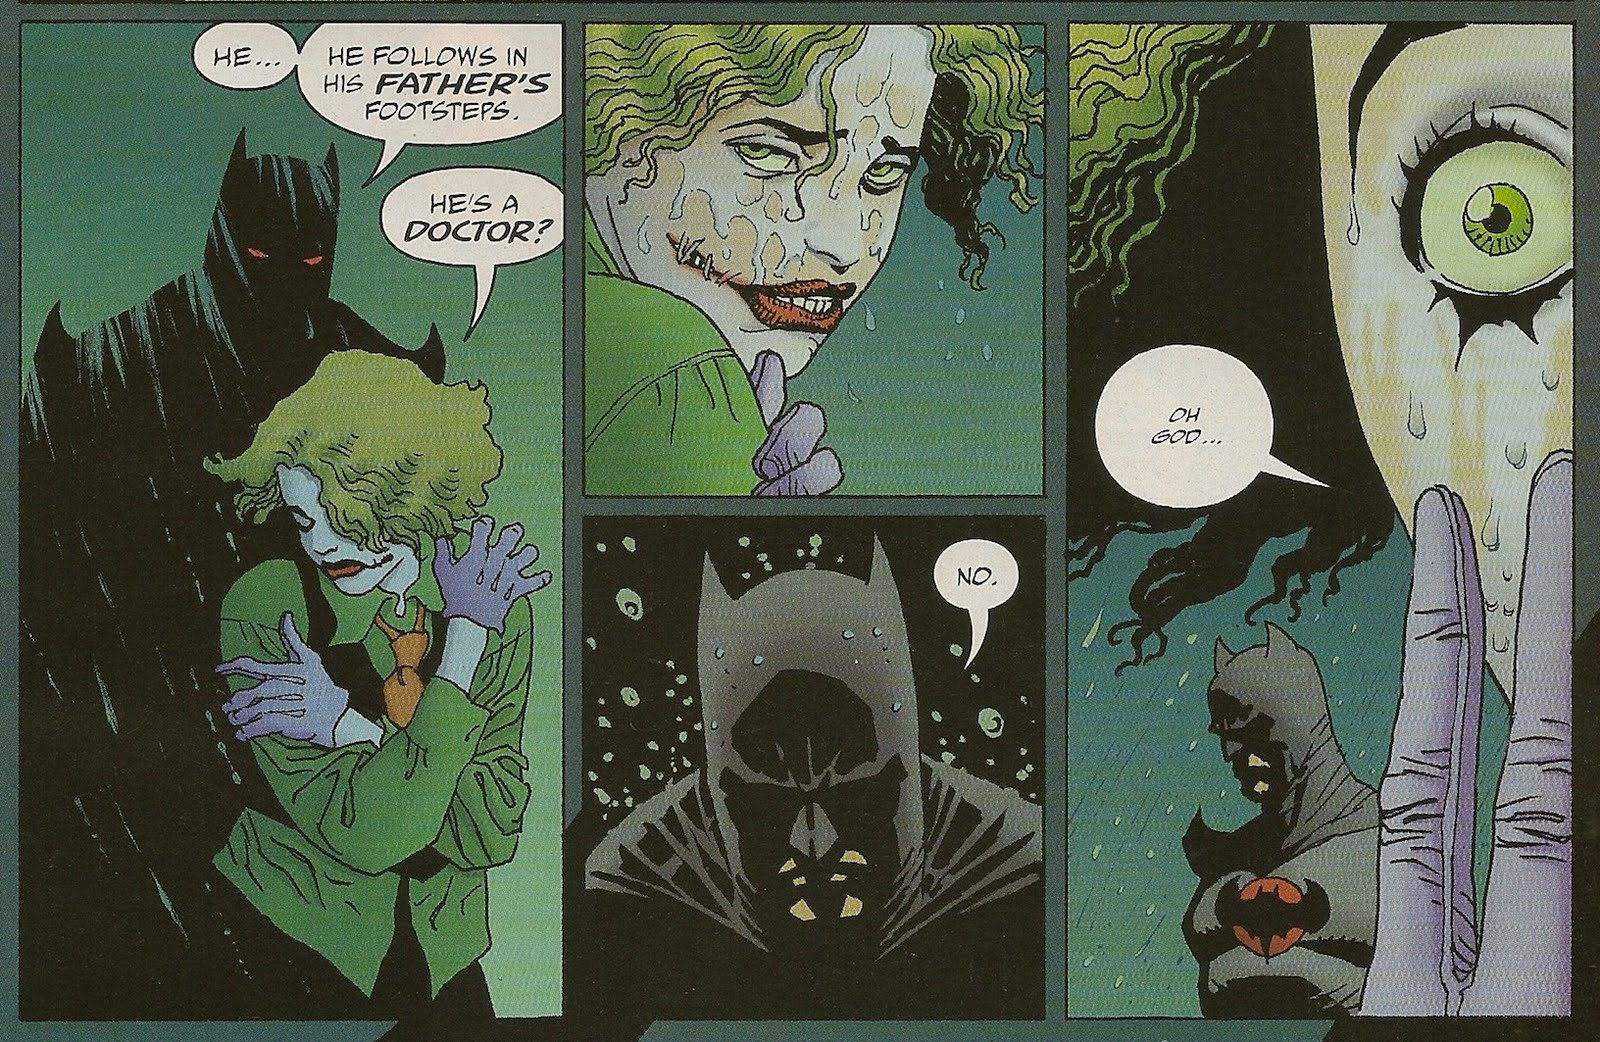 In an alternate time line, Bruce Wayne is killed by the mugger in